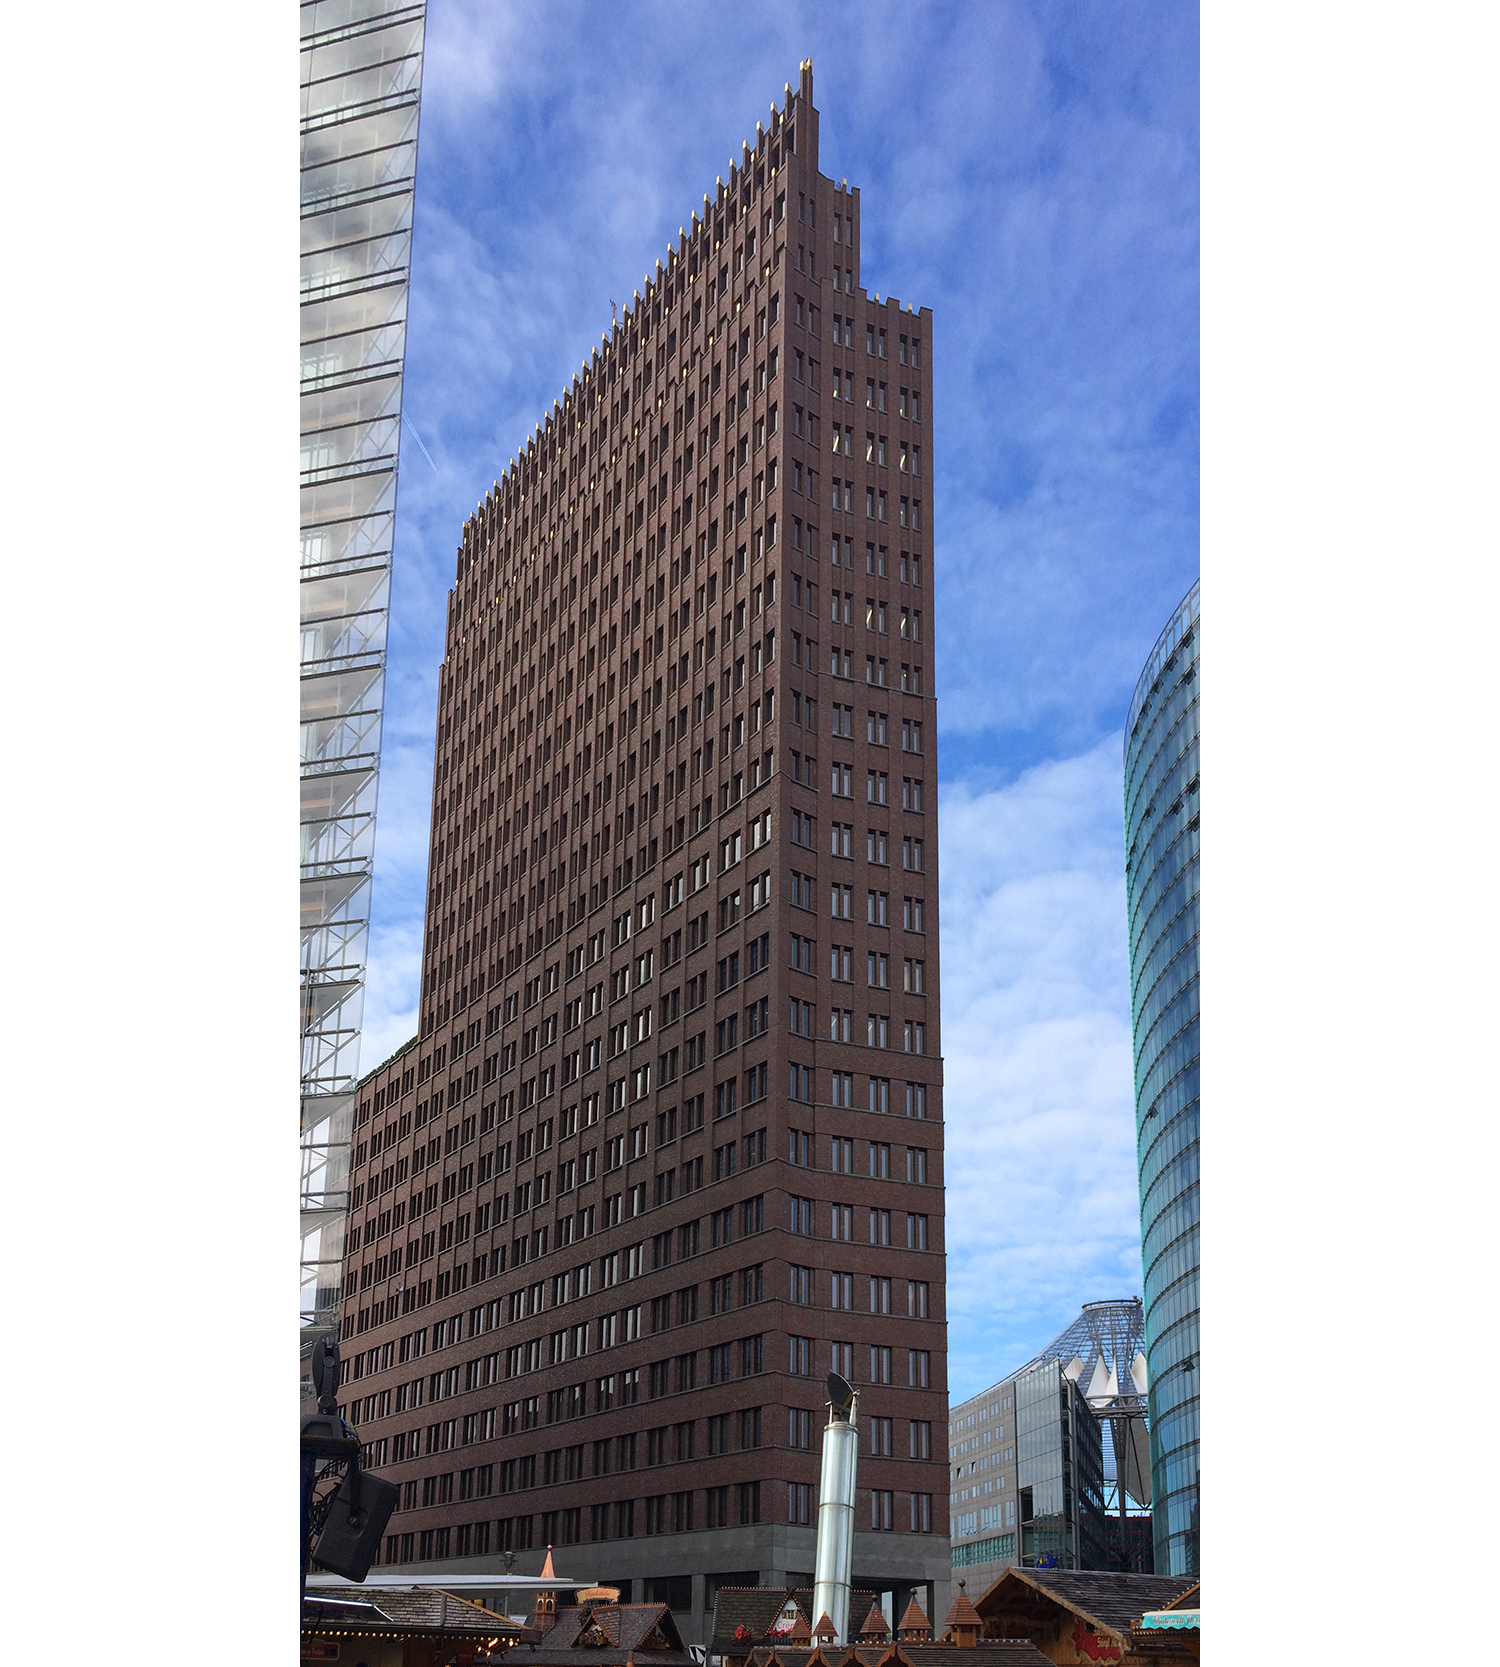 Hans-Kollhoff-tower-Potsdamer-Platz-Berlin-Bizley-Somerset-Architect.jpg